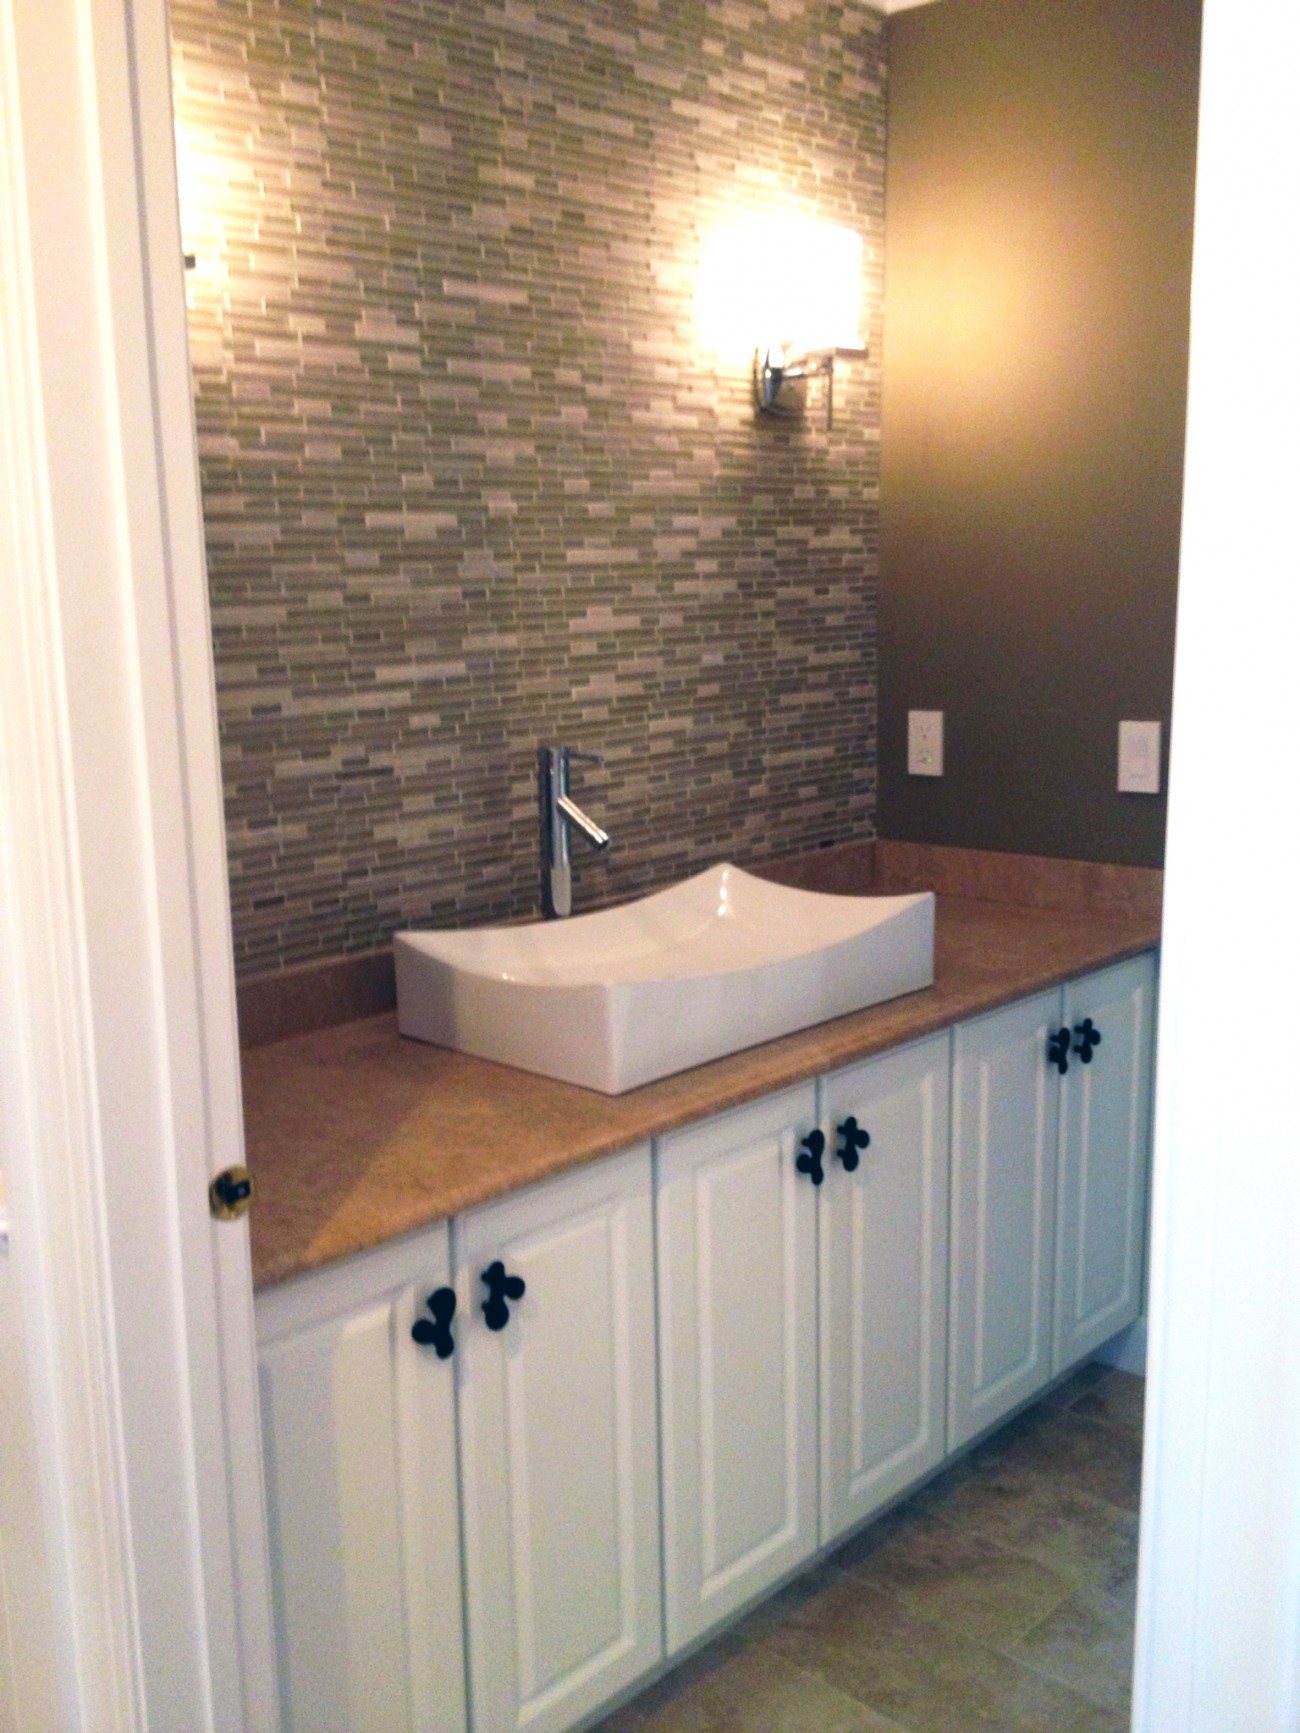 Bathroom Remodeling Contractors Briarcliff Manor New York - Bathroom remodeling westchester ny